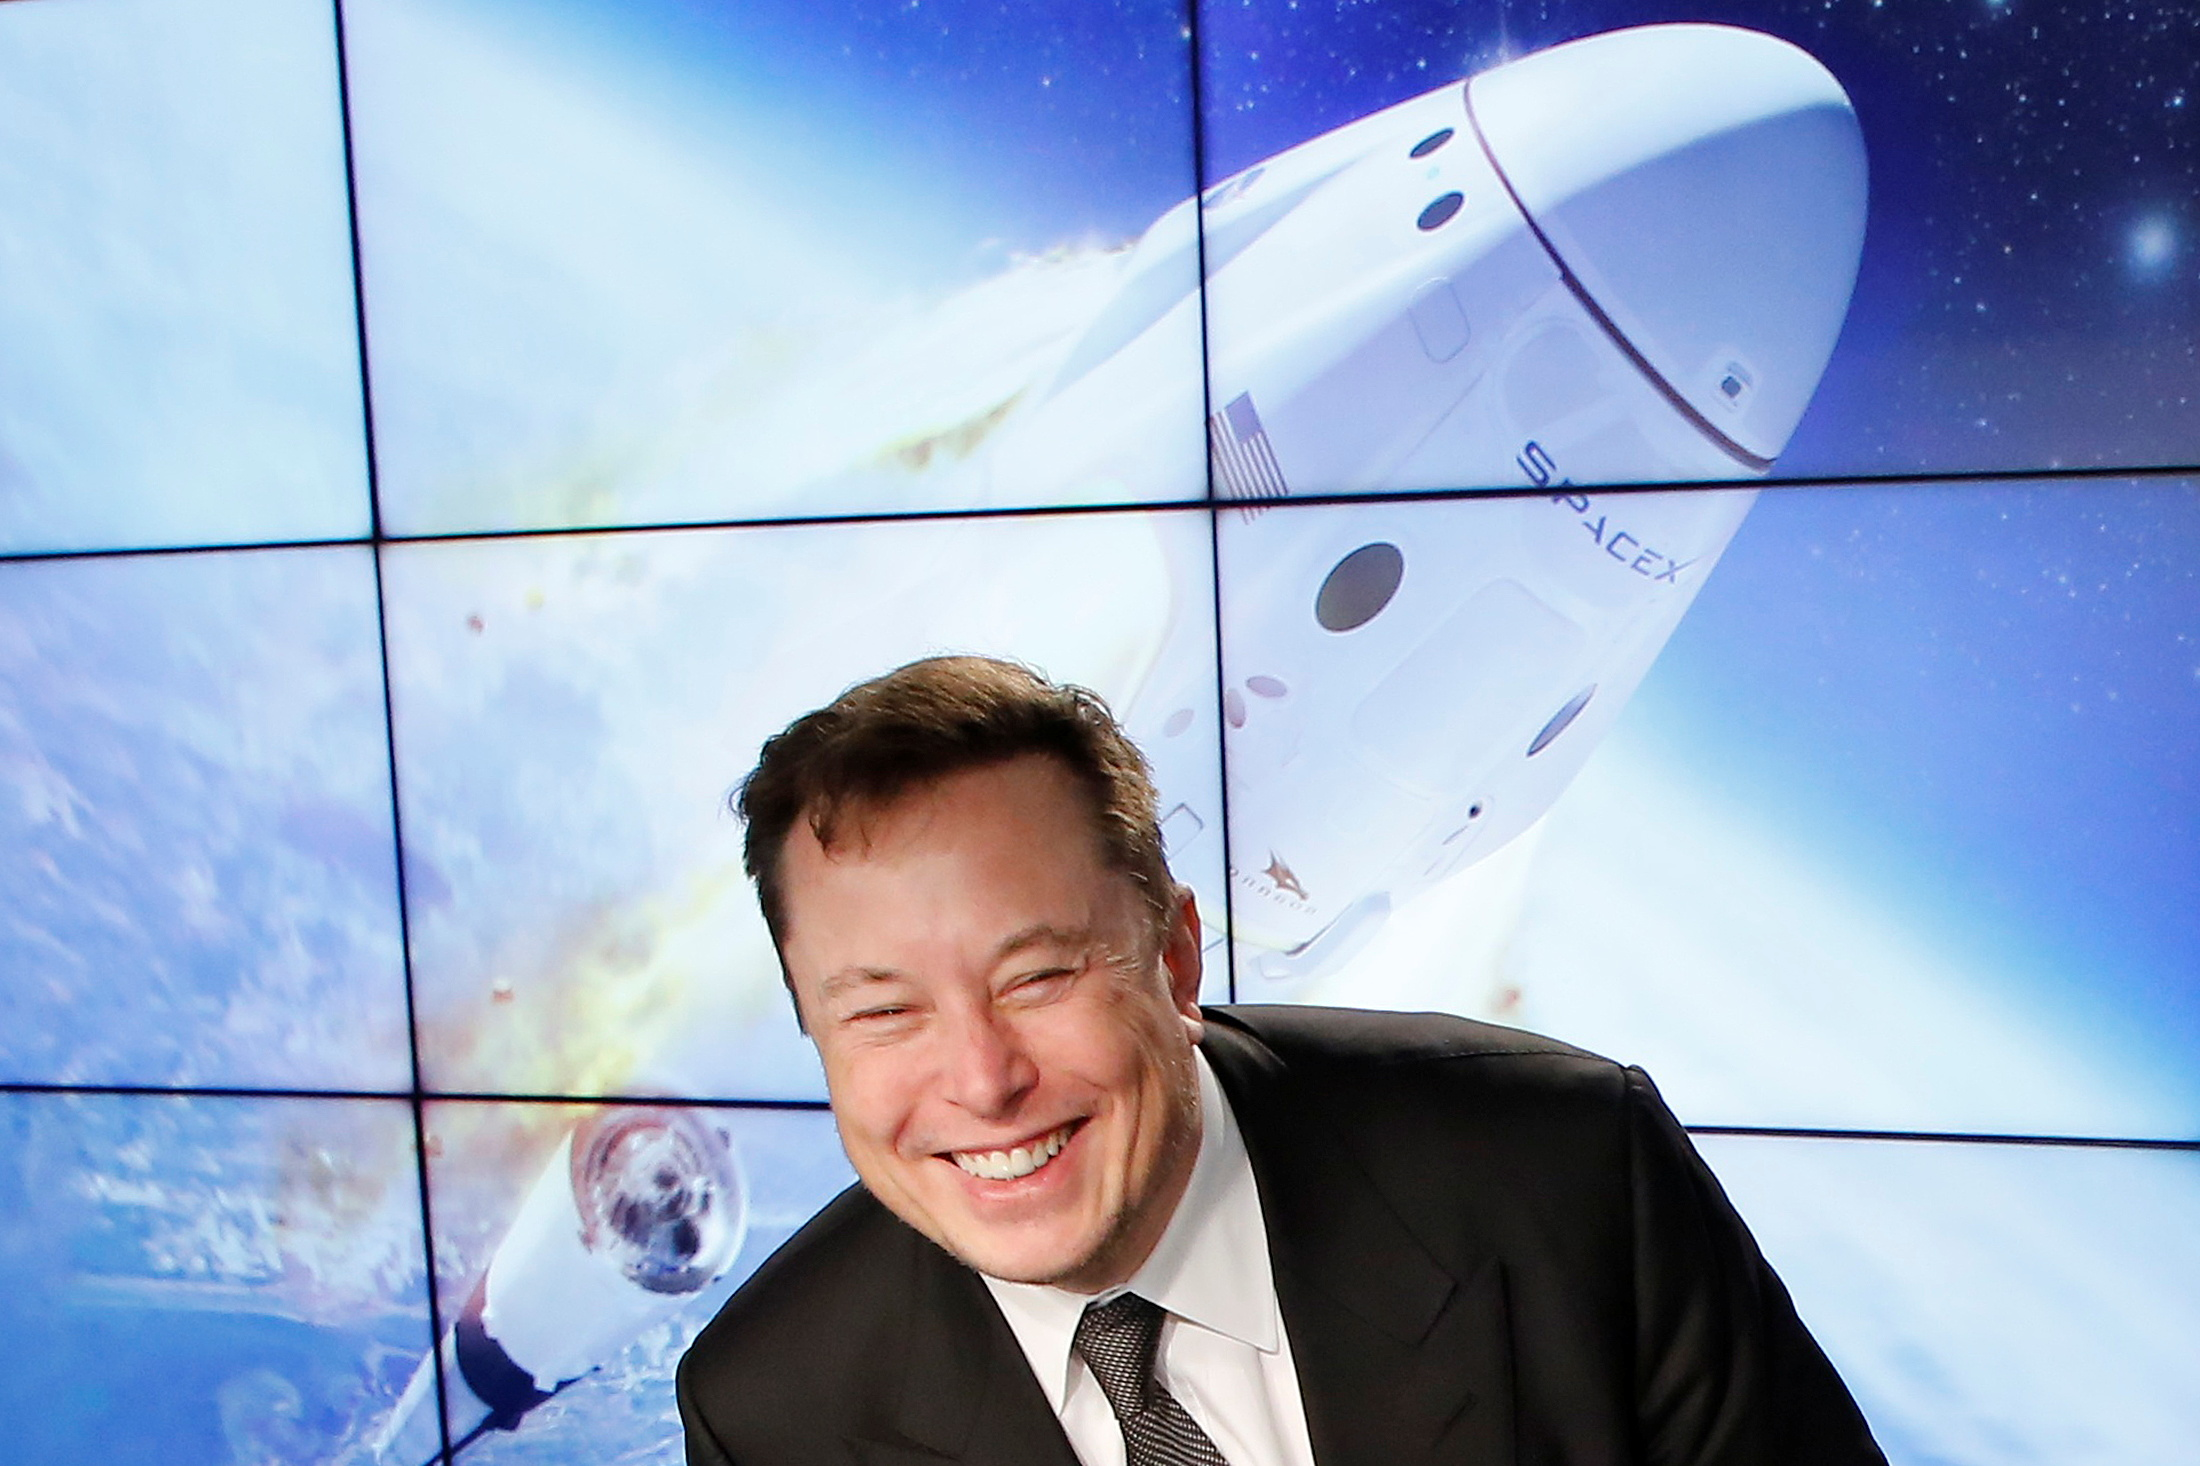 SpaceX founder and chief engineer Elon Musk reacts at a post-launch news conference to discuss the  SpaceX Crew Dragon astronaut capsule in-flight abort test at the Kennedy Space Center in Cape Canaveral, Florida, U.S. January 19, 2020. REUTERS/Joe Skipper/